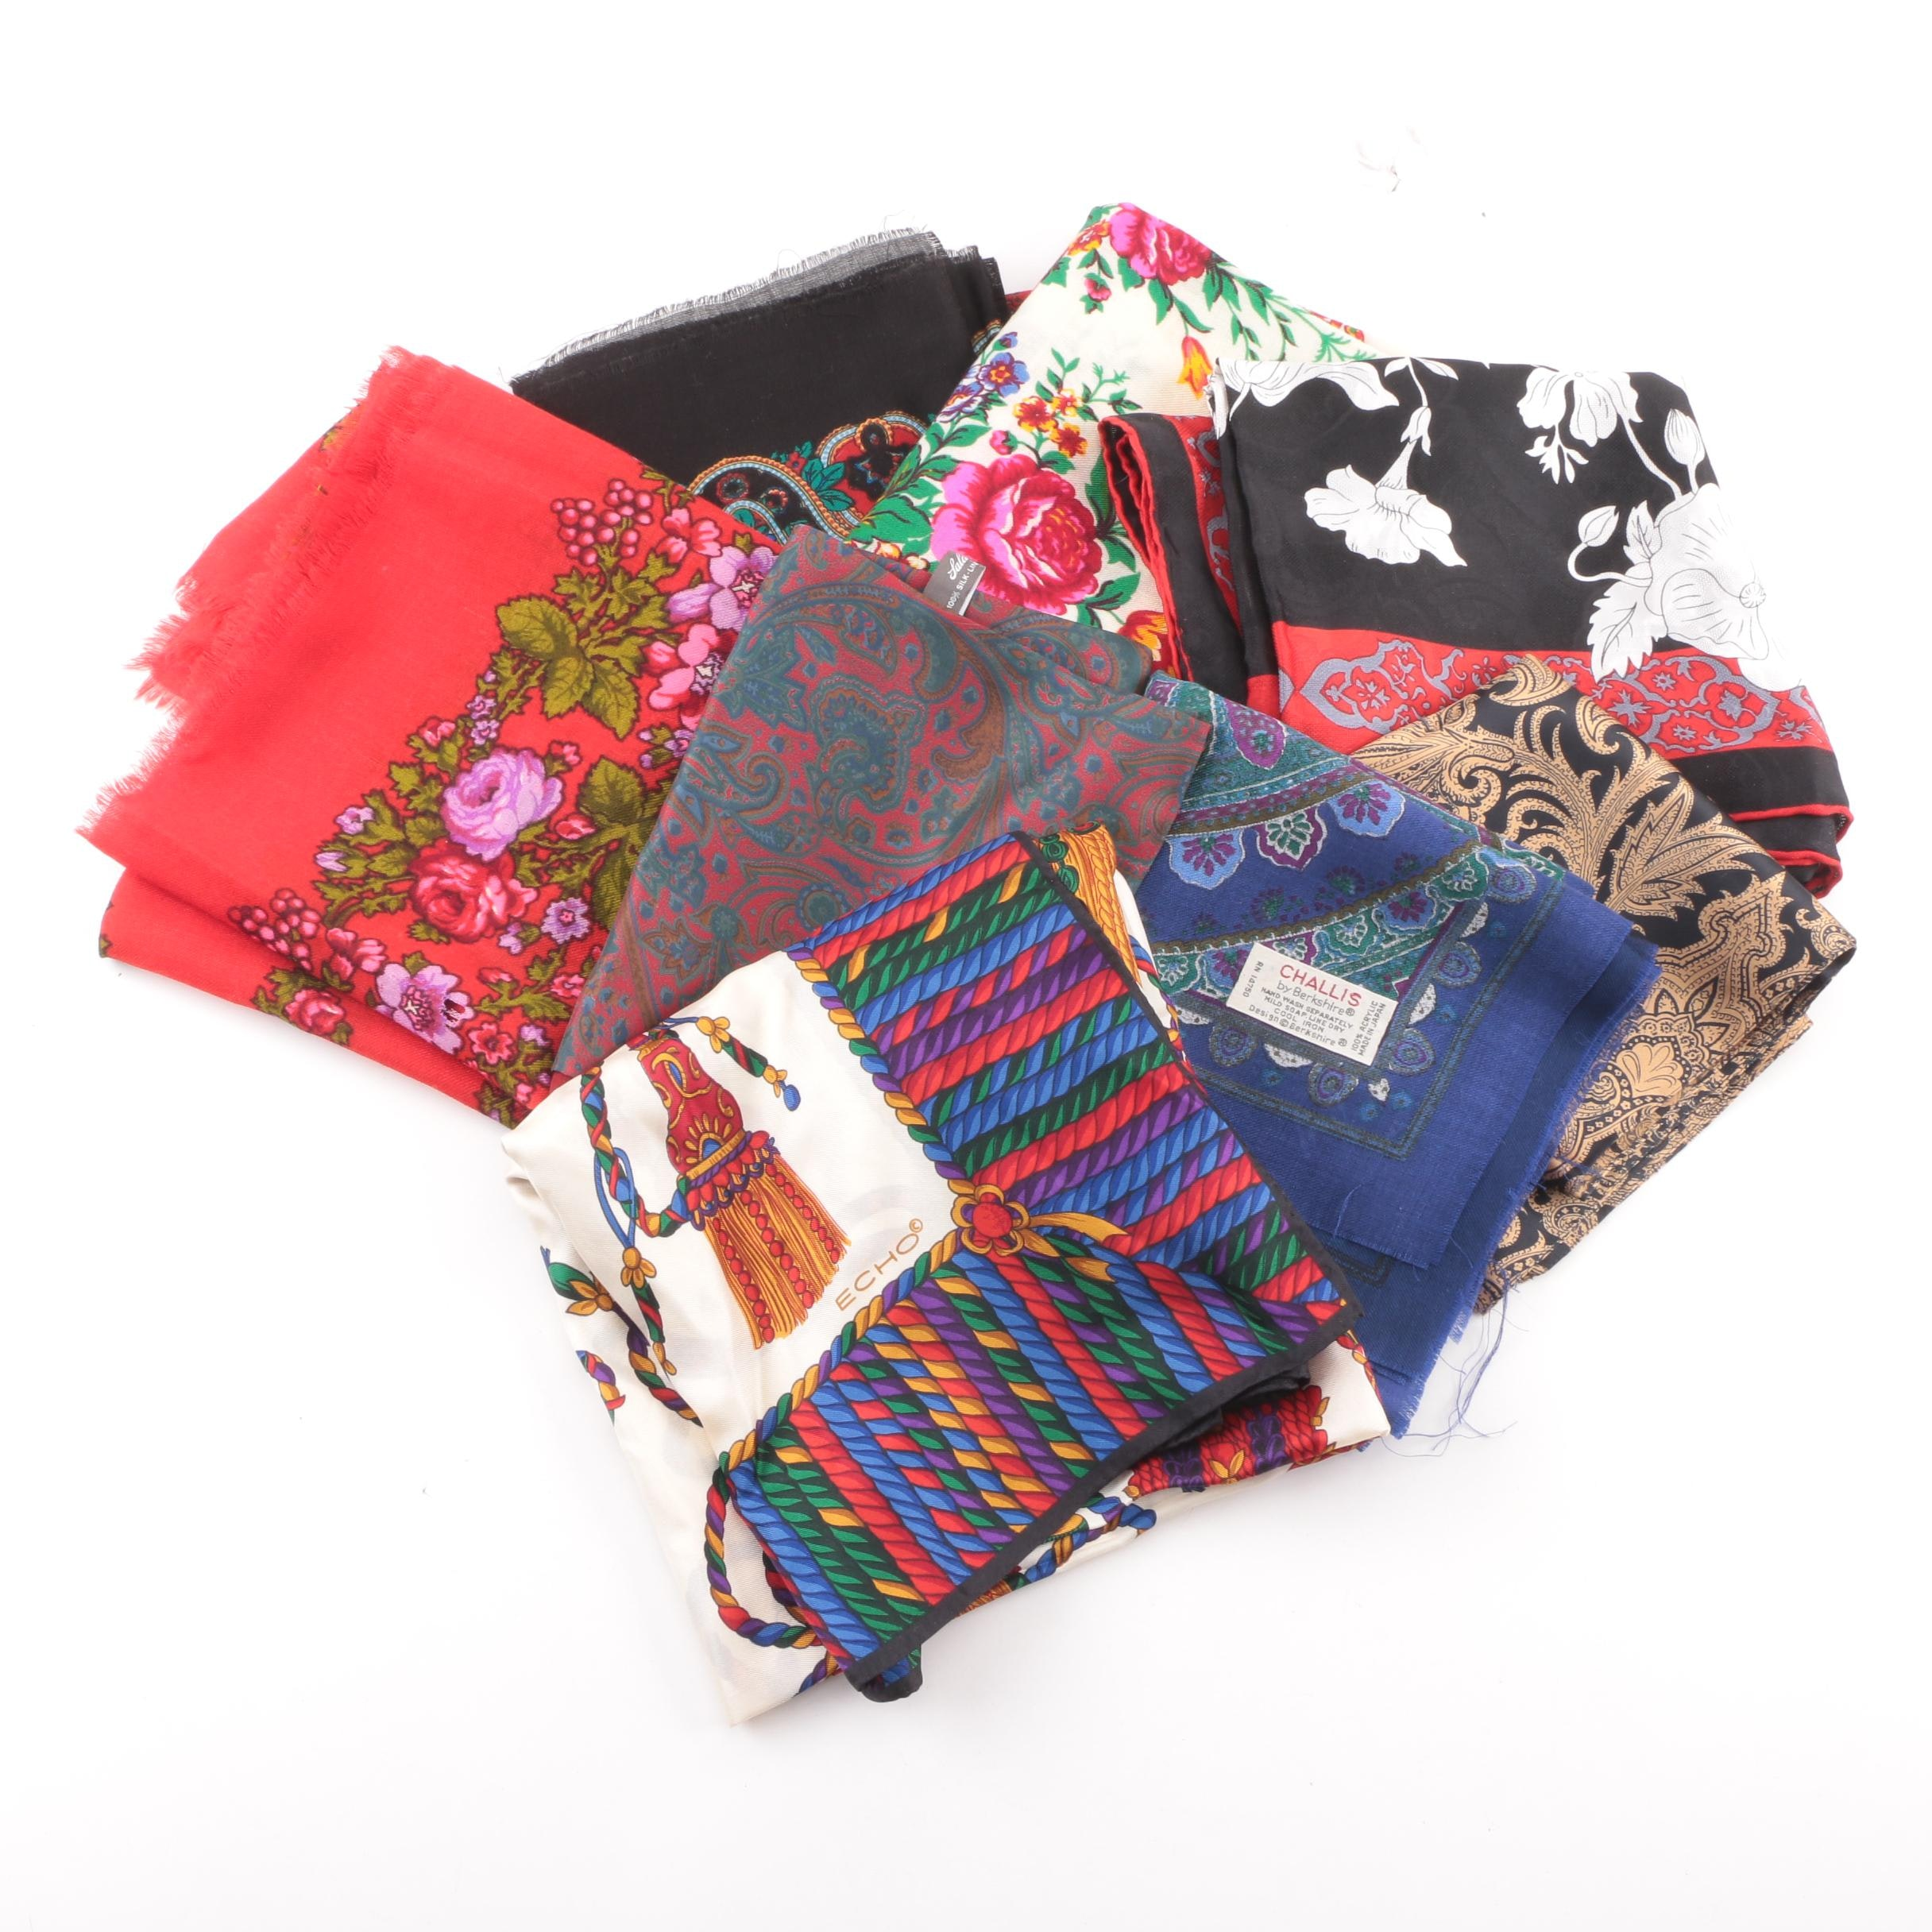 Women's Fashion Scarves including Echo, Saldarini and Challis by Berkshire